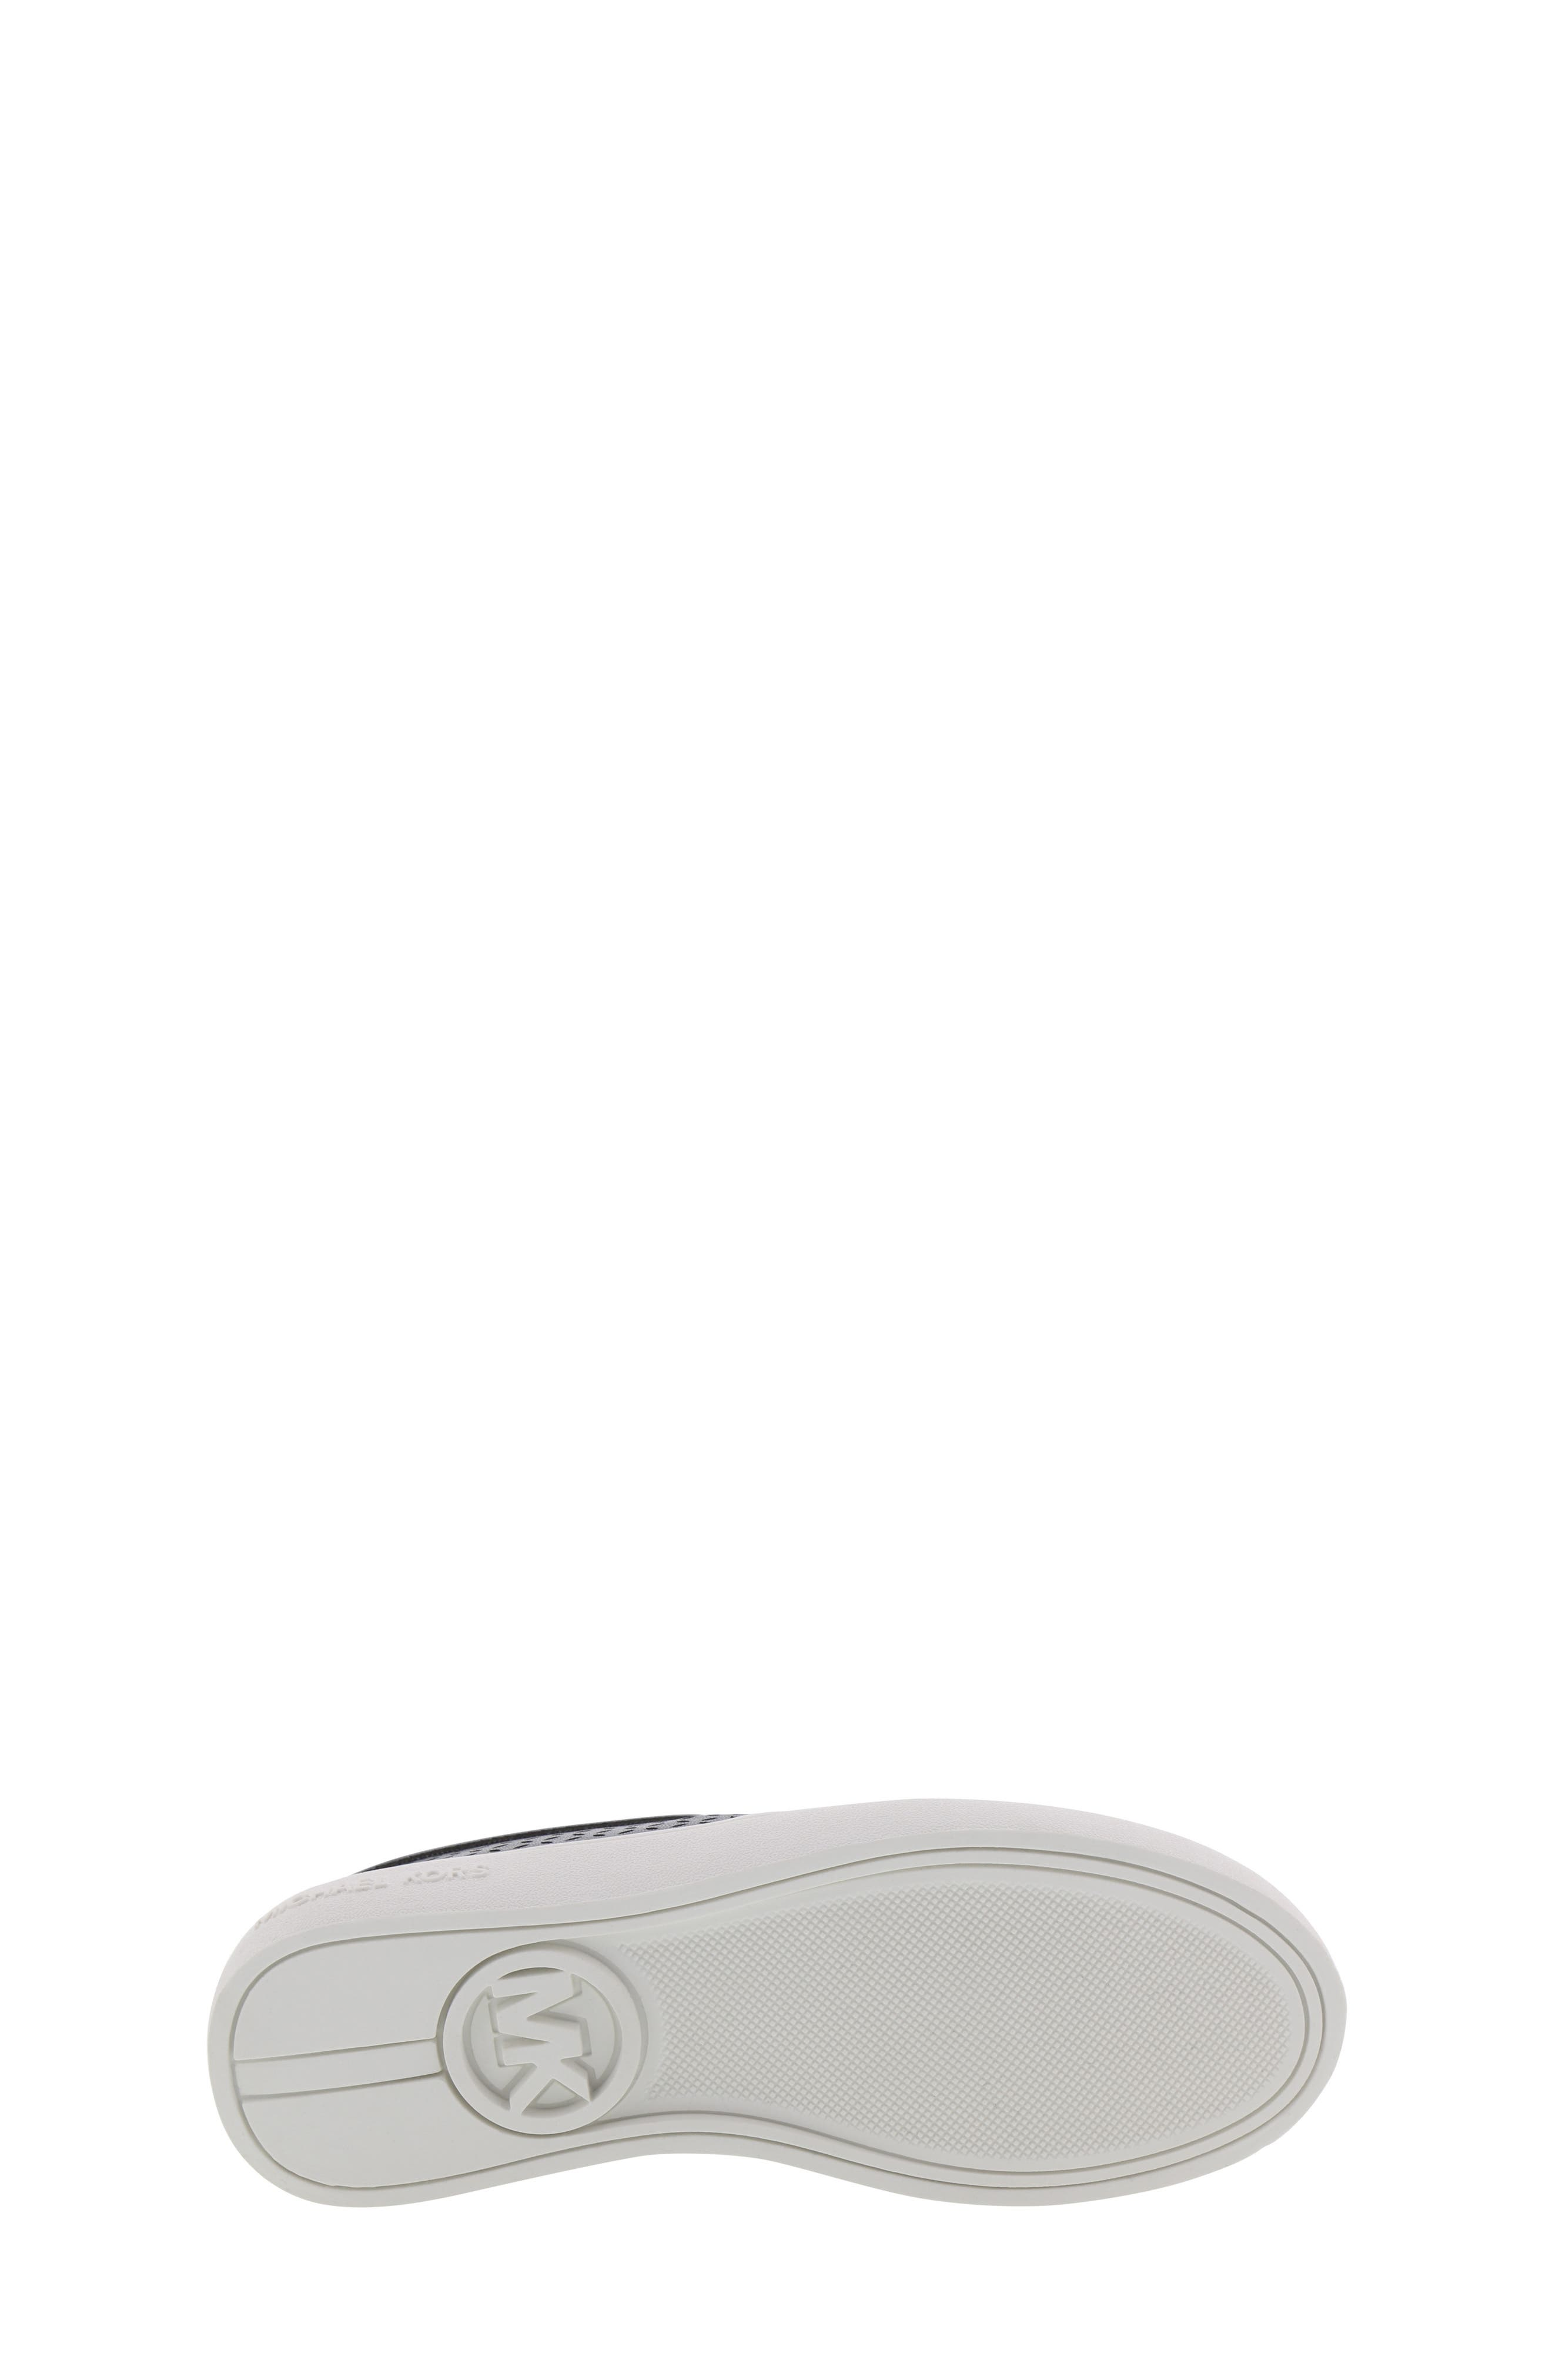 MICHAEL MICHAEL KORS, Jem Olivia Perforated Slip-On Sneaker, Alternate thumbnail 6, color, BLACK